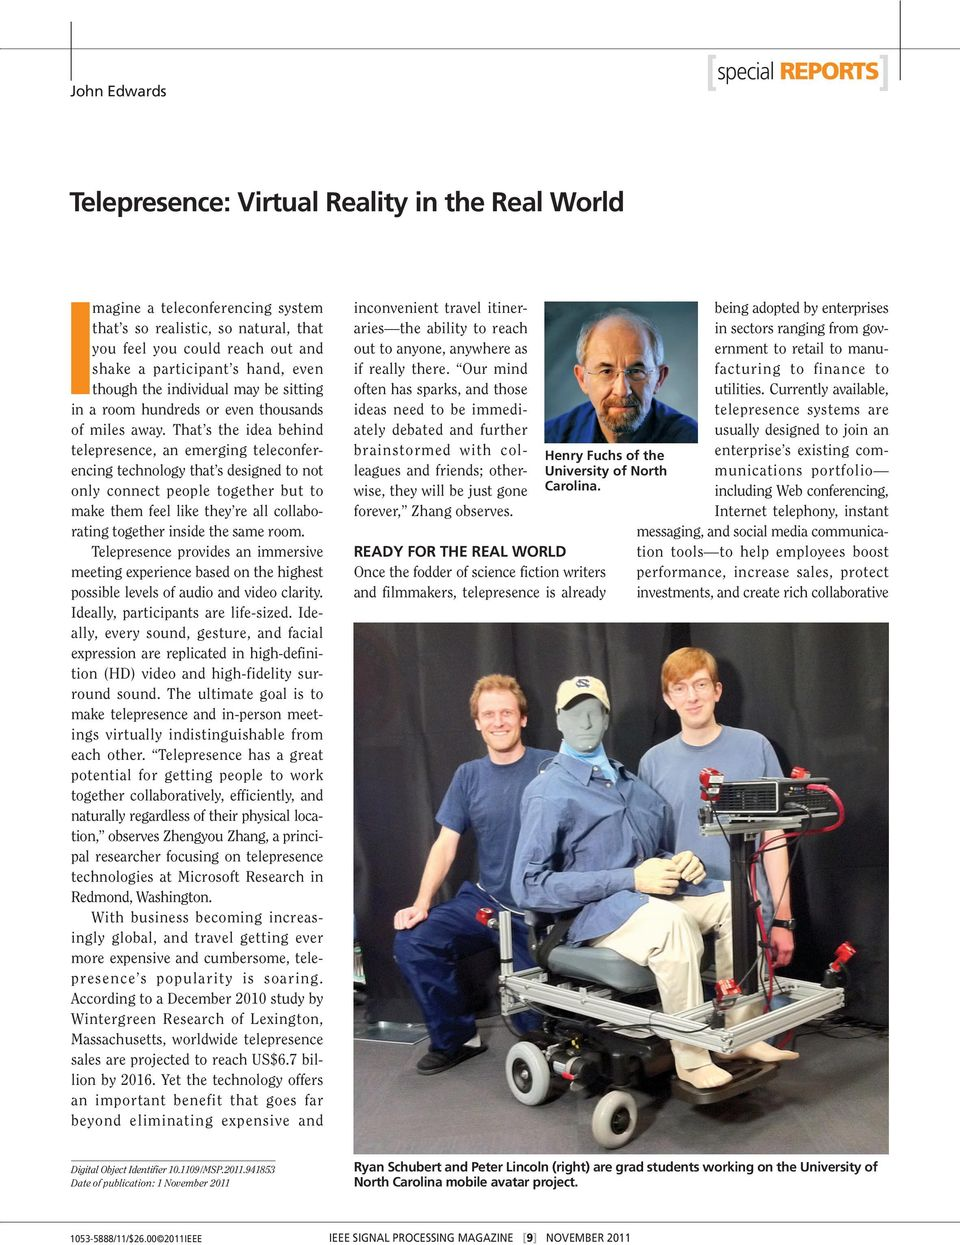 That s the idea behind telepresence, an emerging teleconferencing technology that s designed to not only connect people together but to make them feel like they re all collaborating together inside